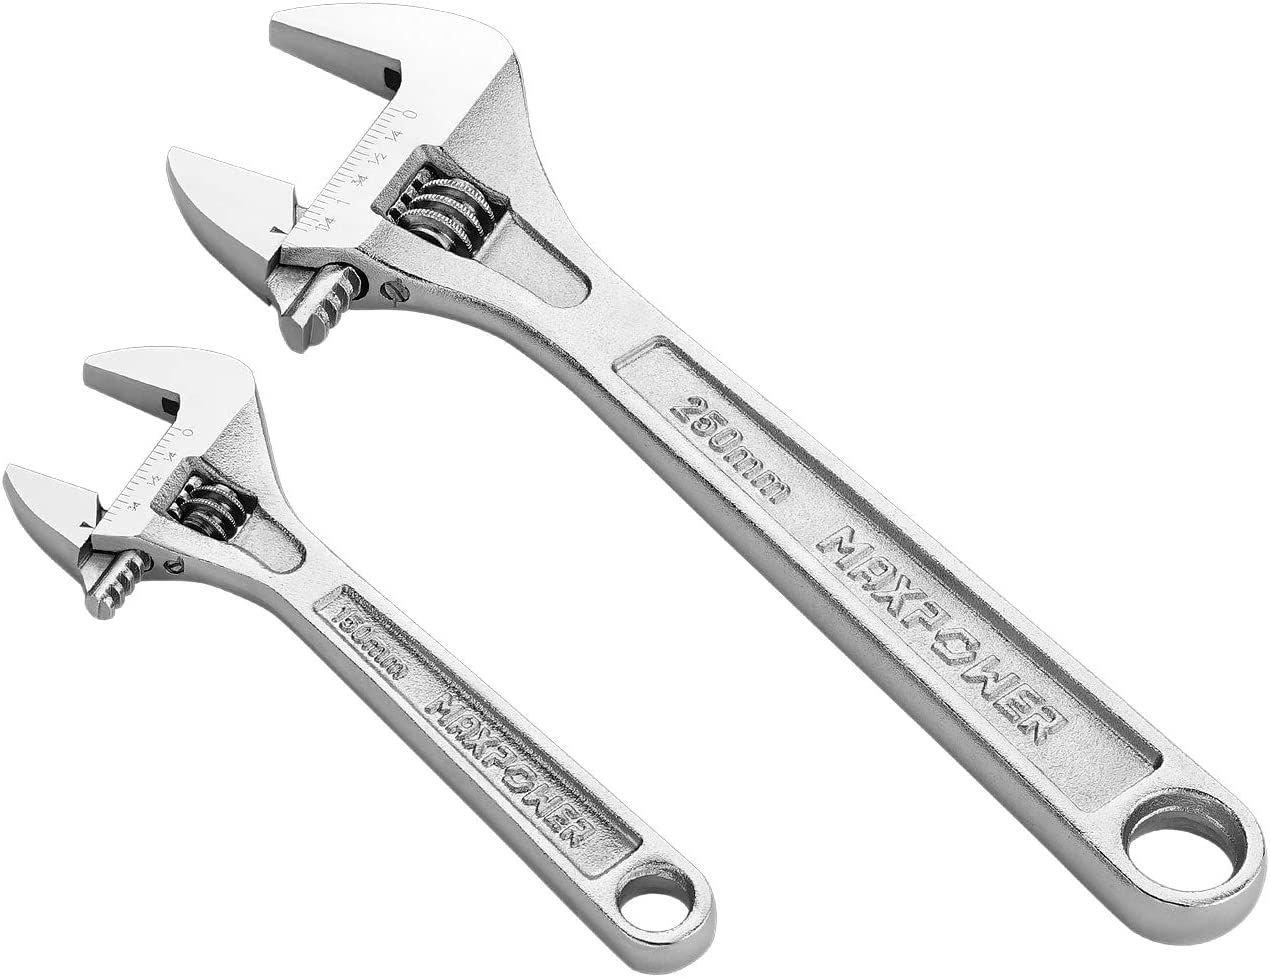 Adjustable Shifter Movable Spanners with Extra Large Jaw Capacity Metric//SAE 12-Inch Chrome Finish MAXPOWER 2PCS Heavy Duty Adjustable Wrench Set Drop Forged Cr-V Steel Includes 8-Inch